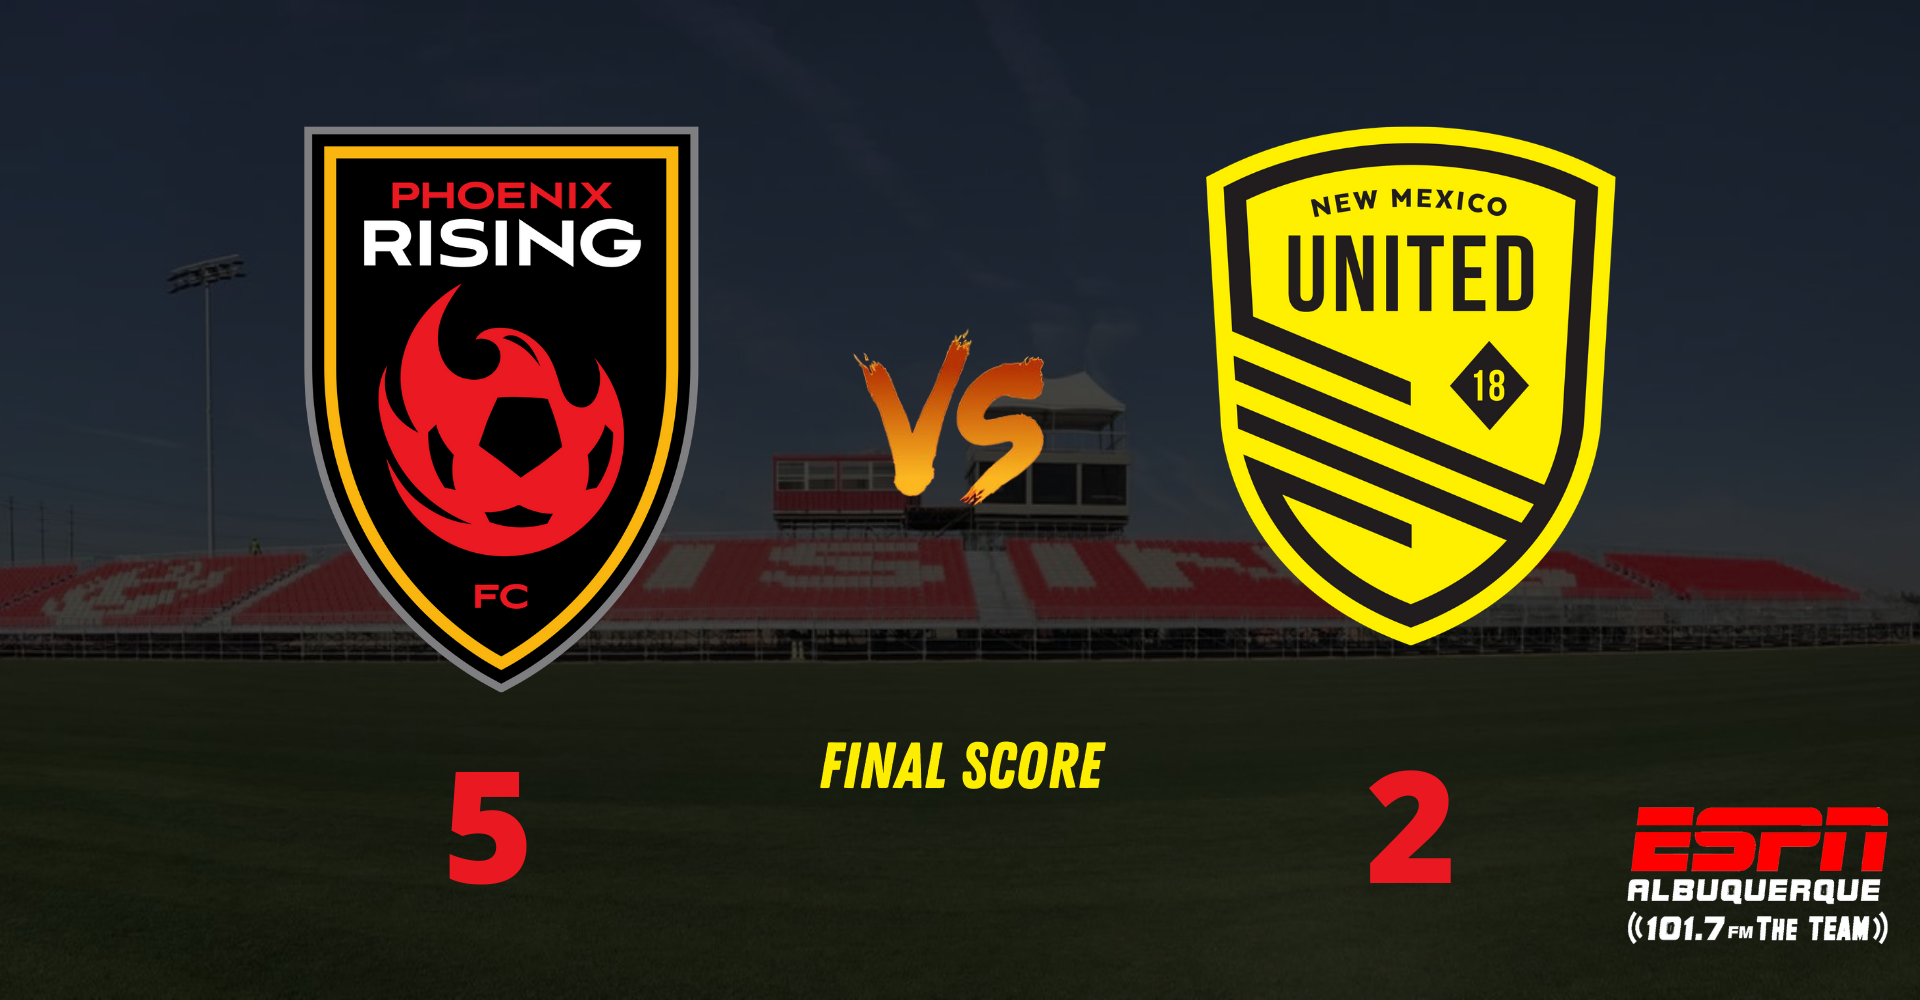 NM United drop points in Tempe as they fall to Phoenix Rising FC, 5-2